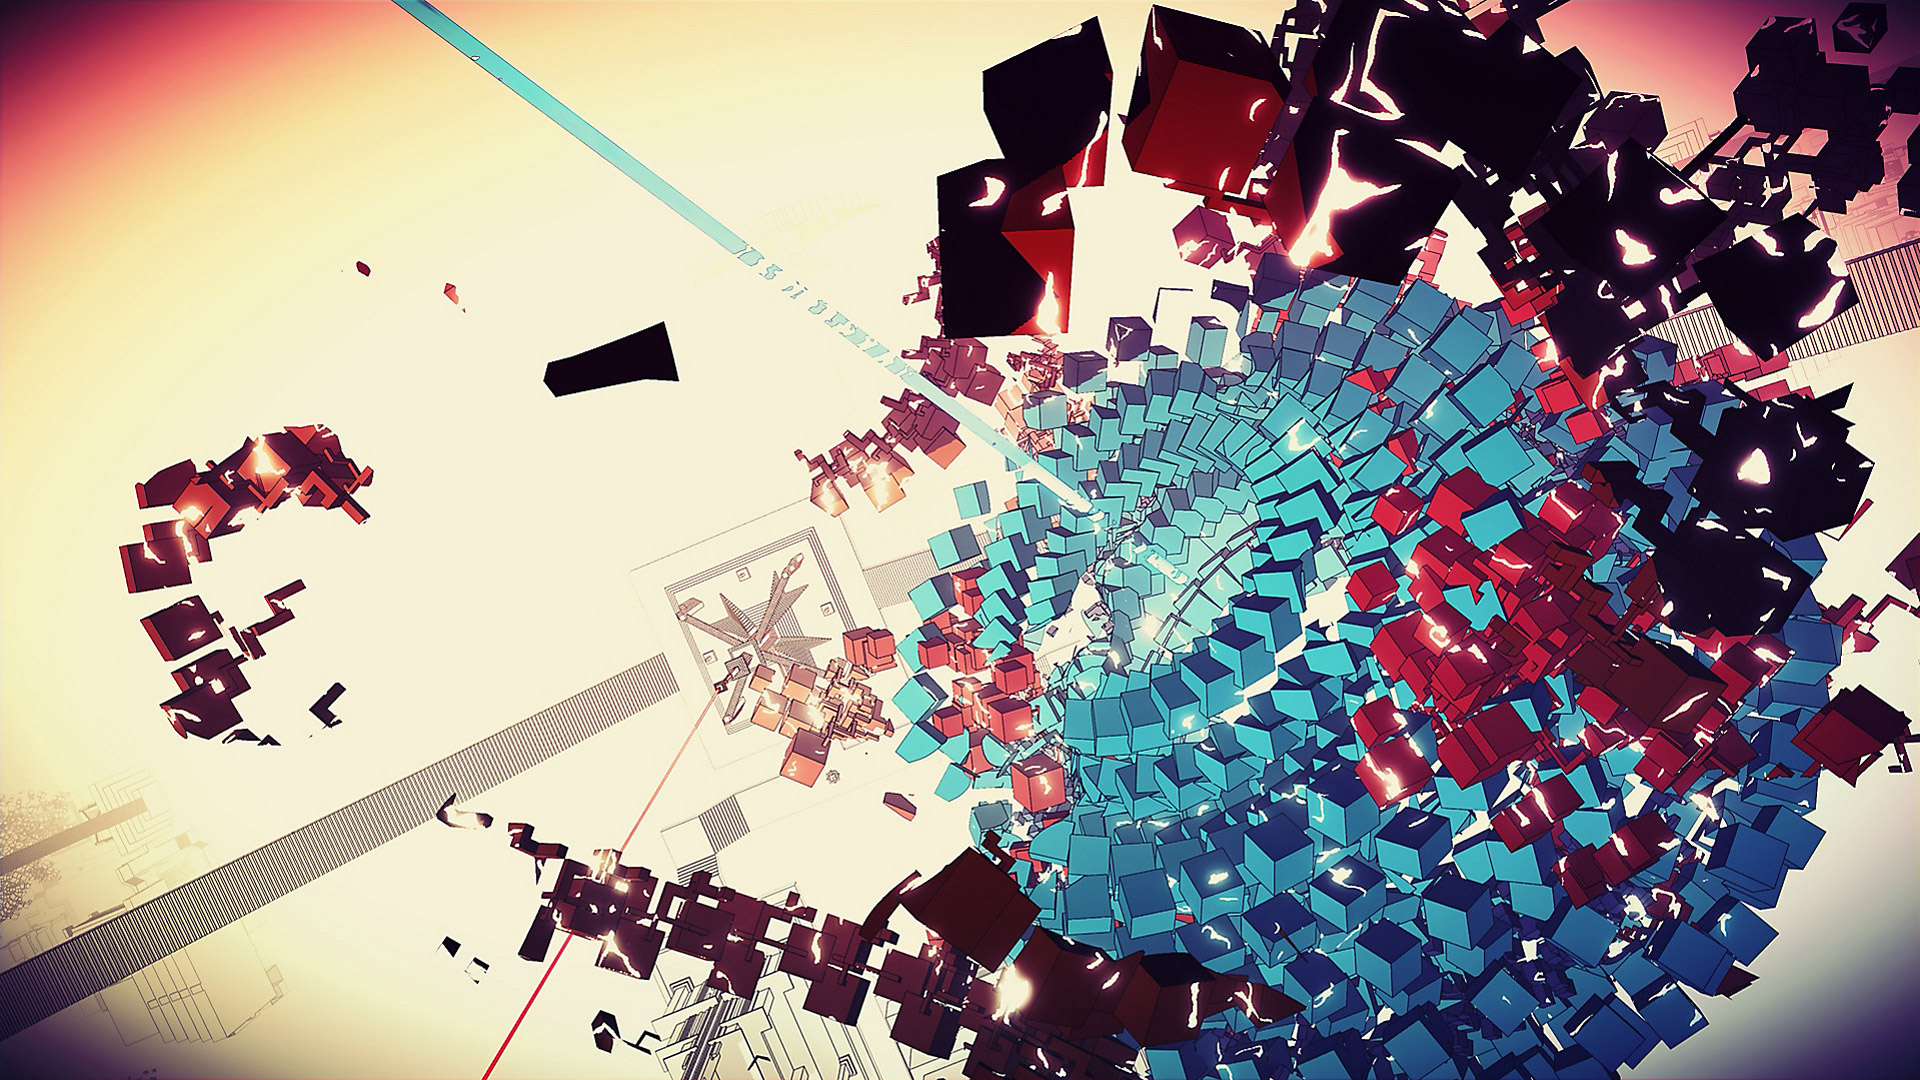 Free Manifold Garden Wallpaper in 1920x1080